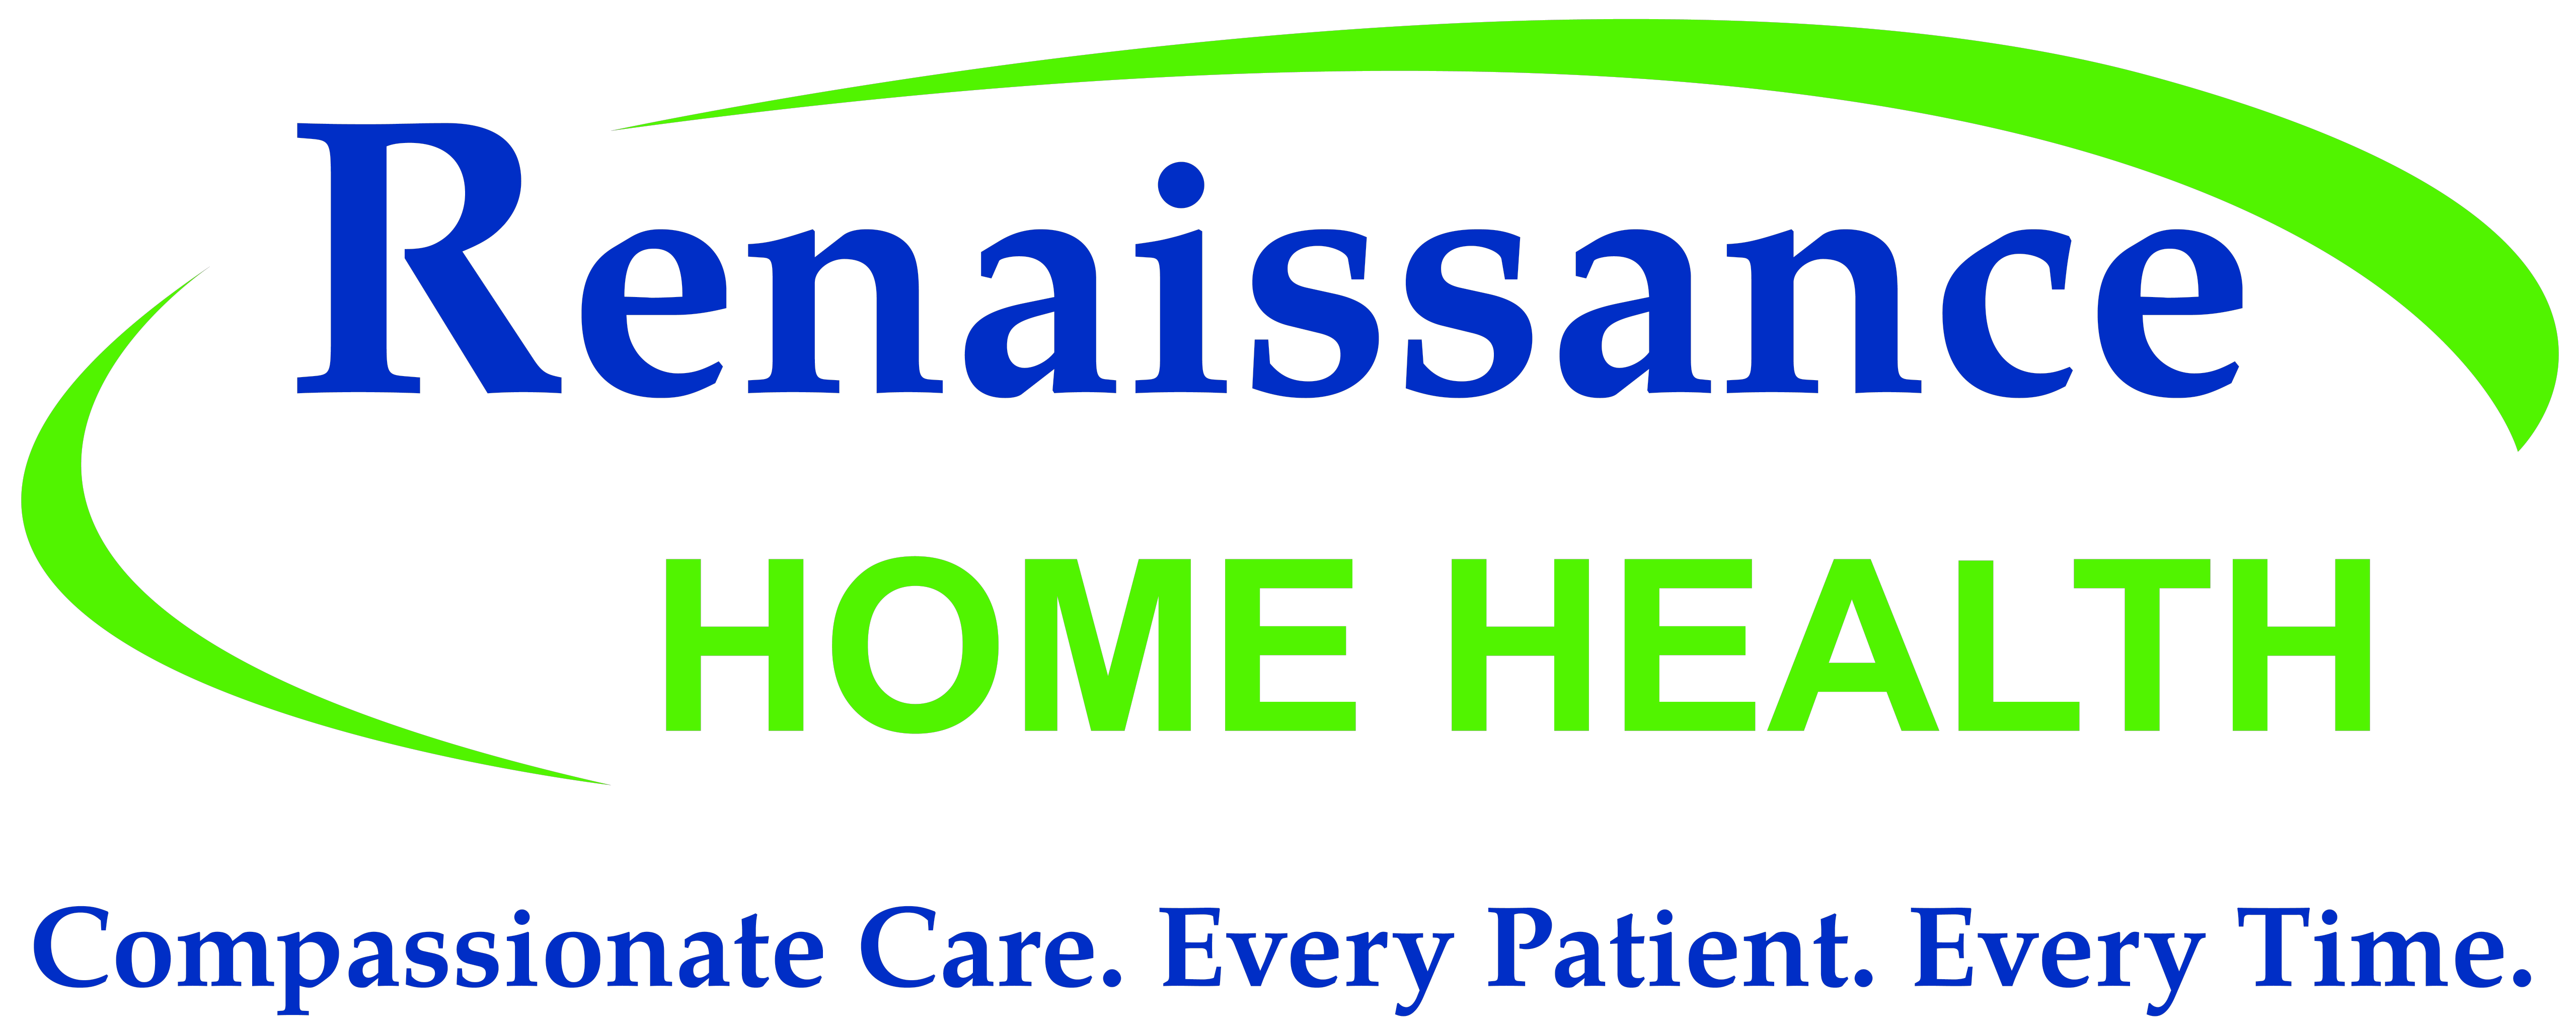 Top Rated Medicare certified and accredited home health agency